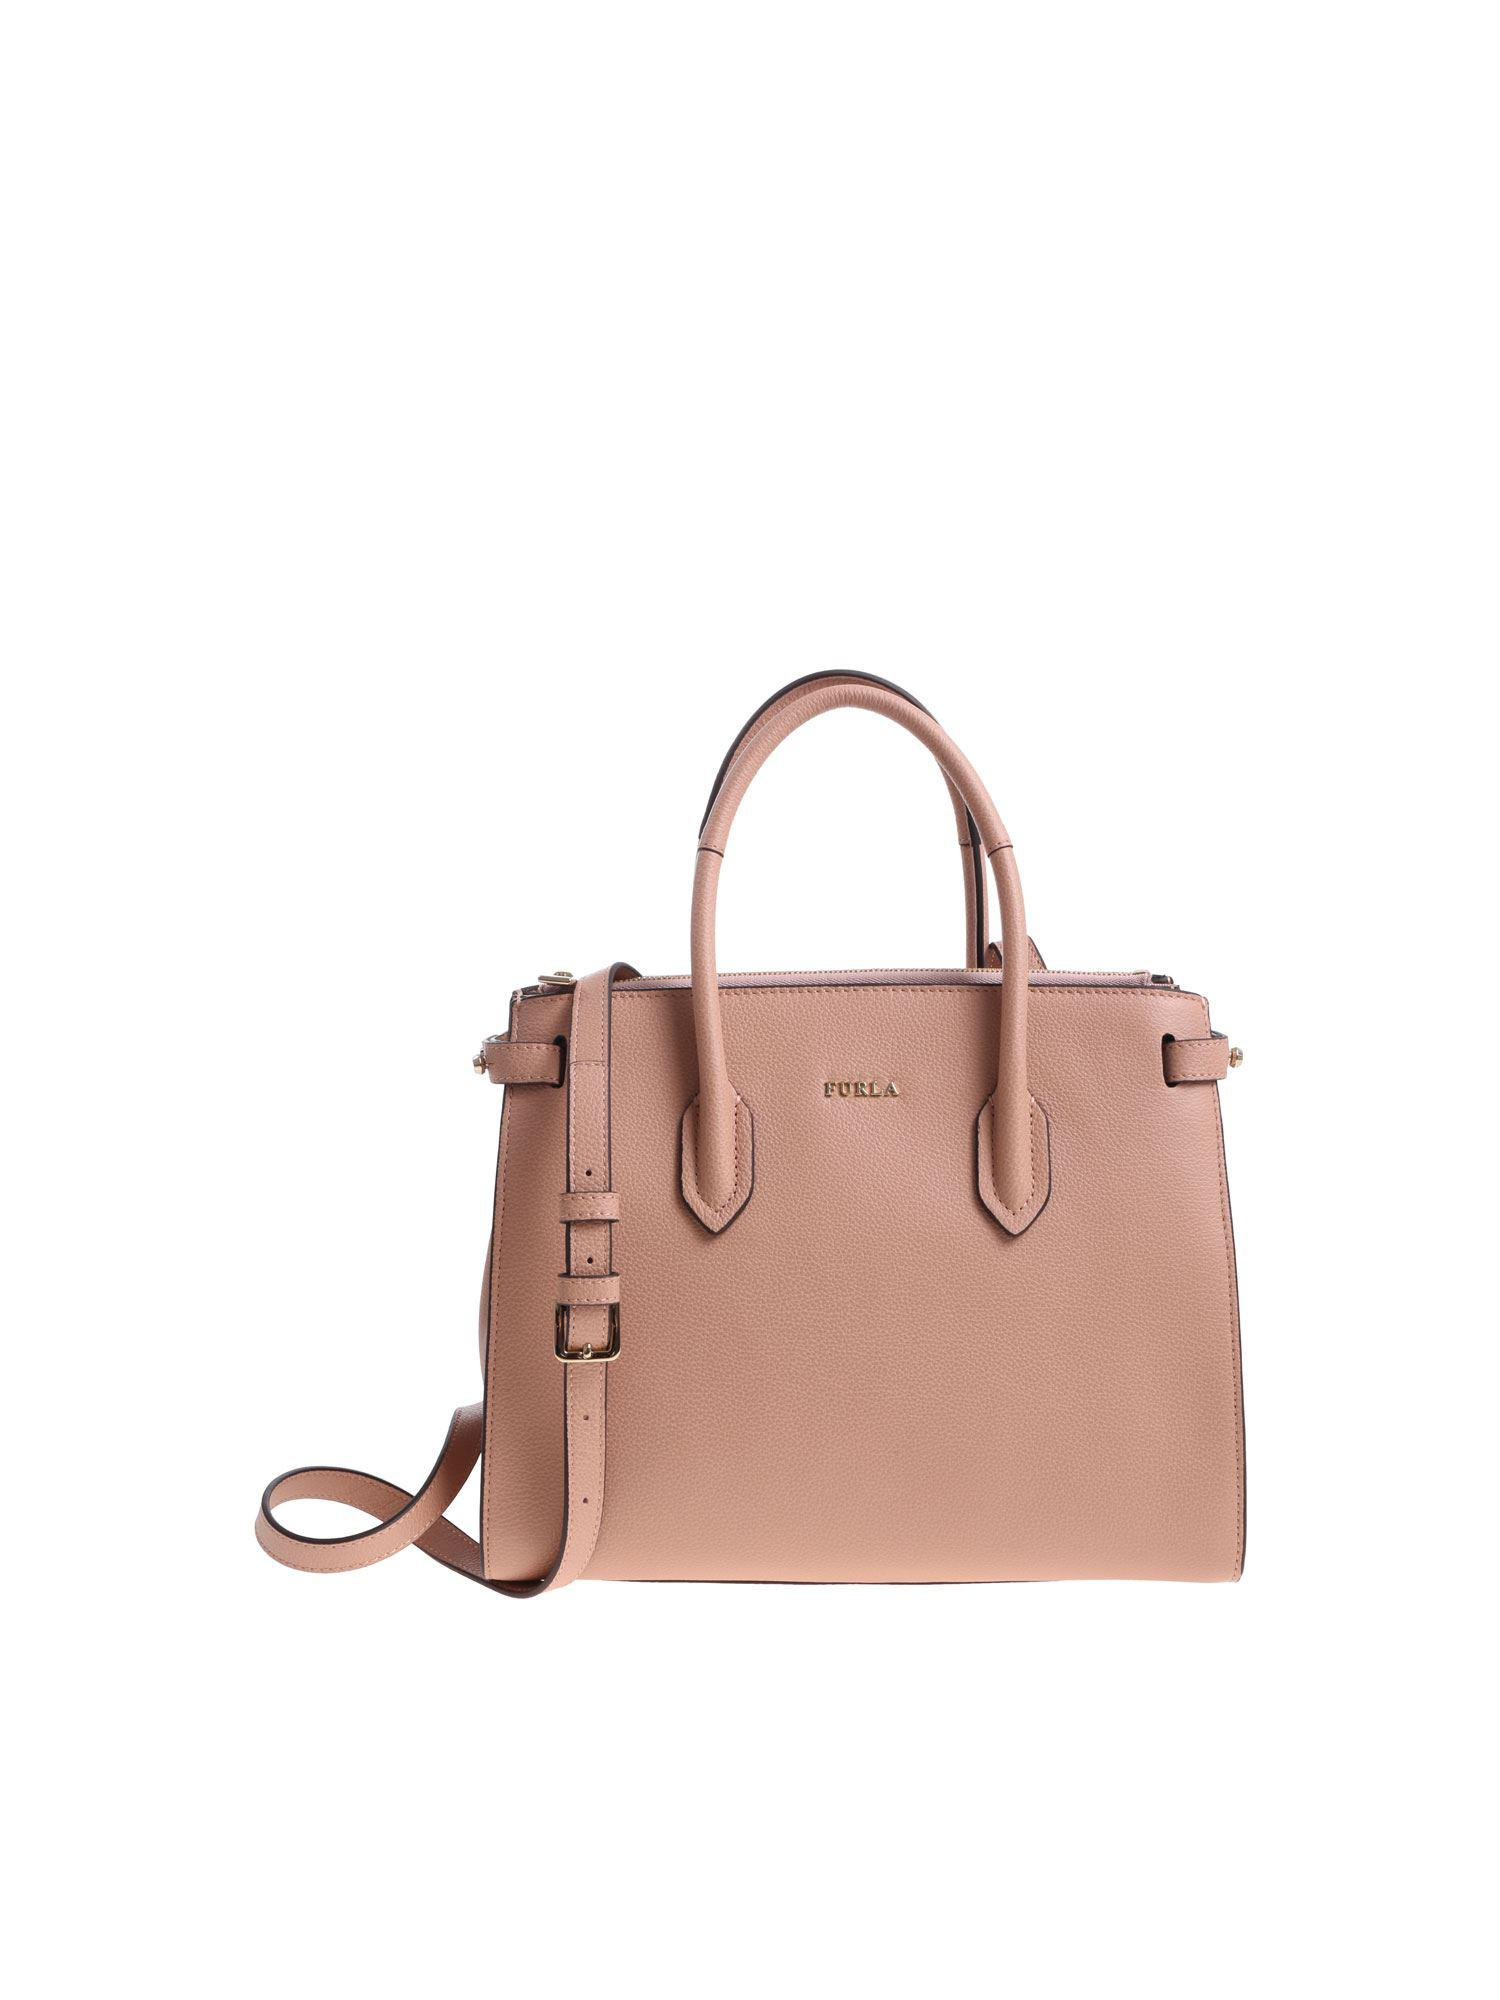 Furla Pink Pin Hand Bag in Pink - Lyst bd5f988f943